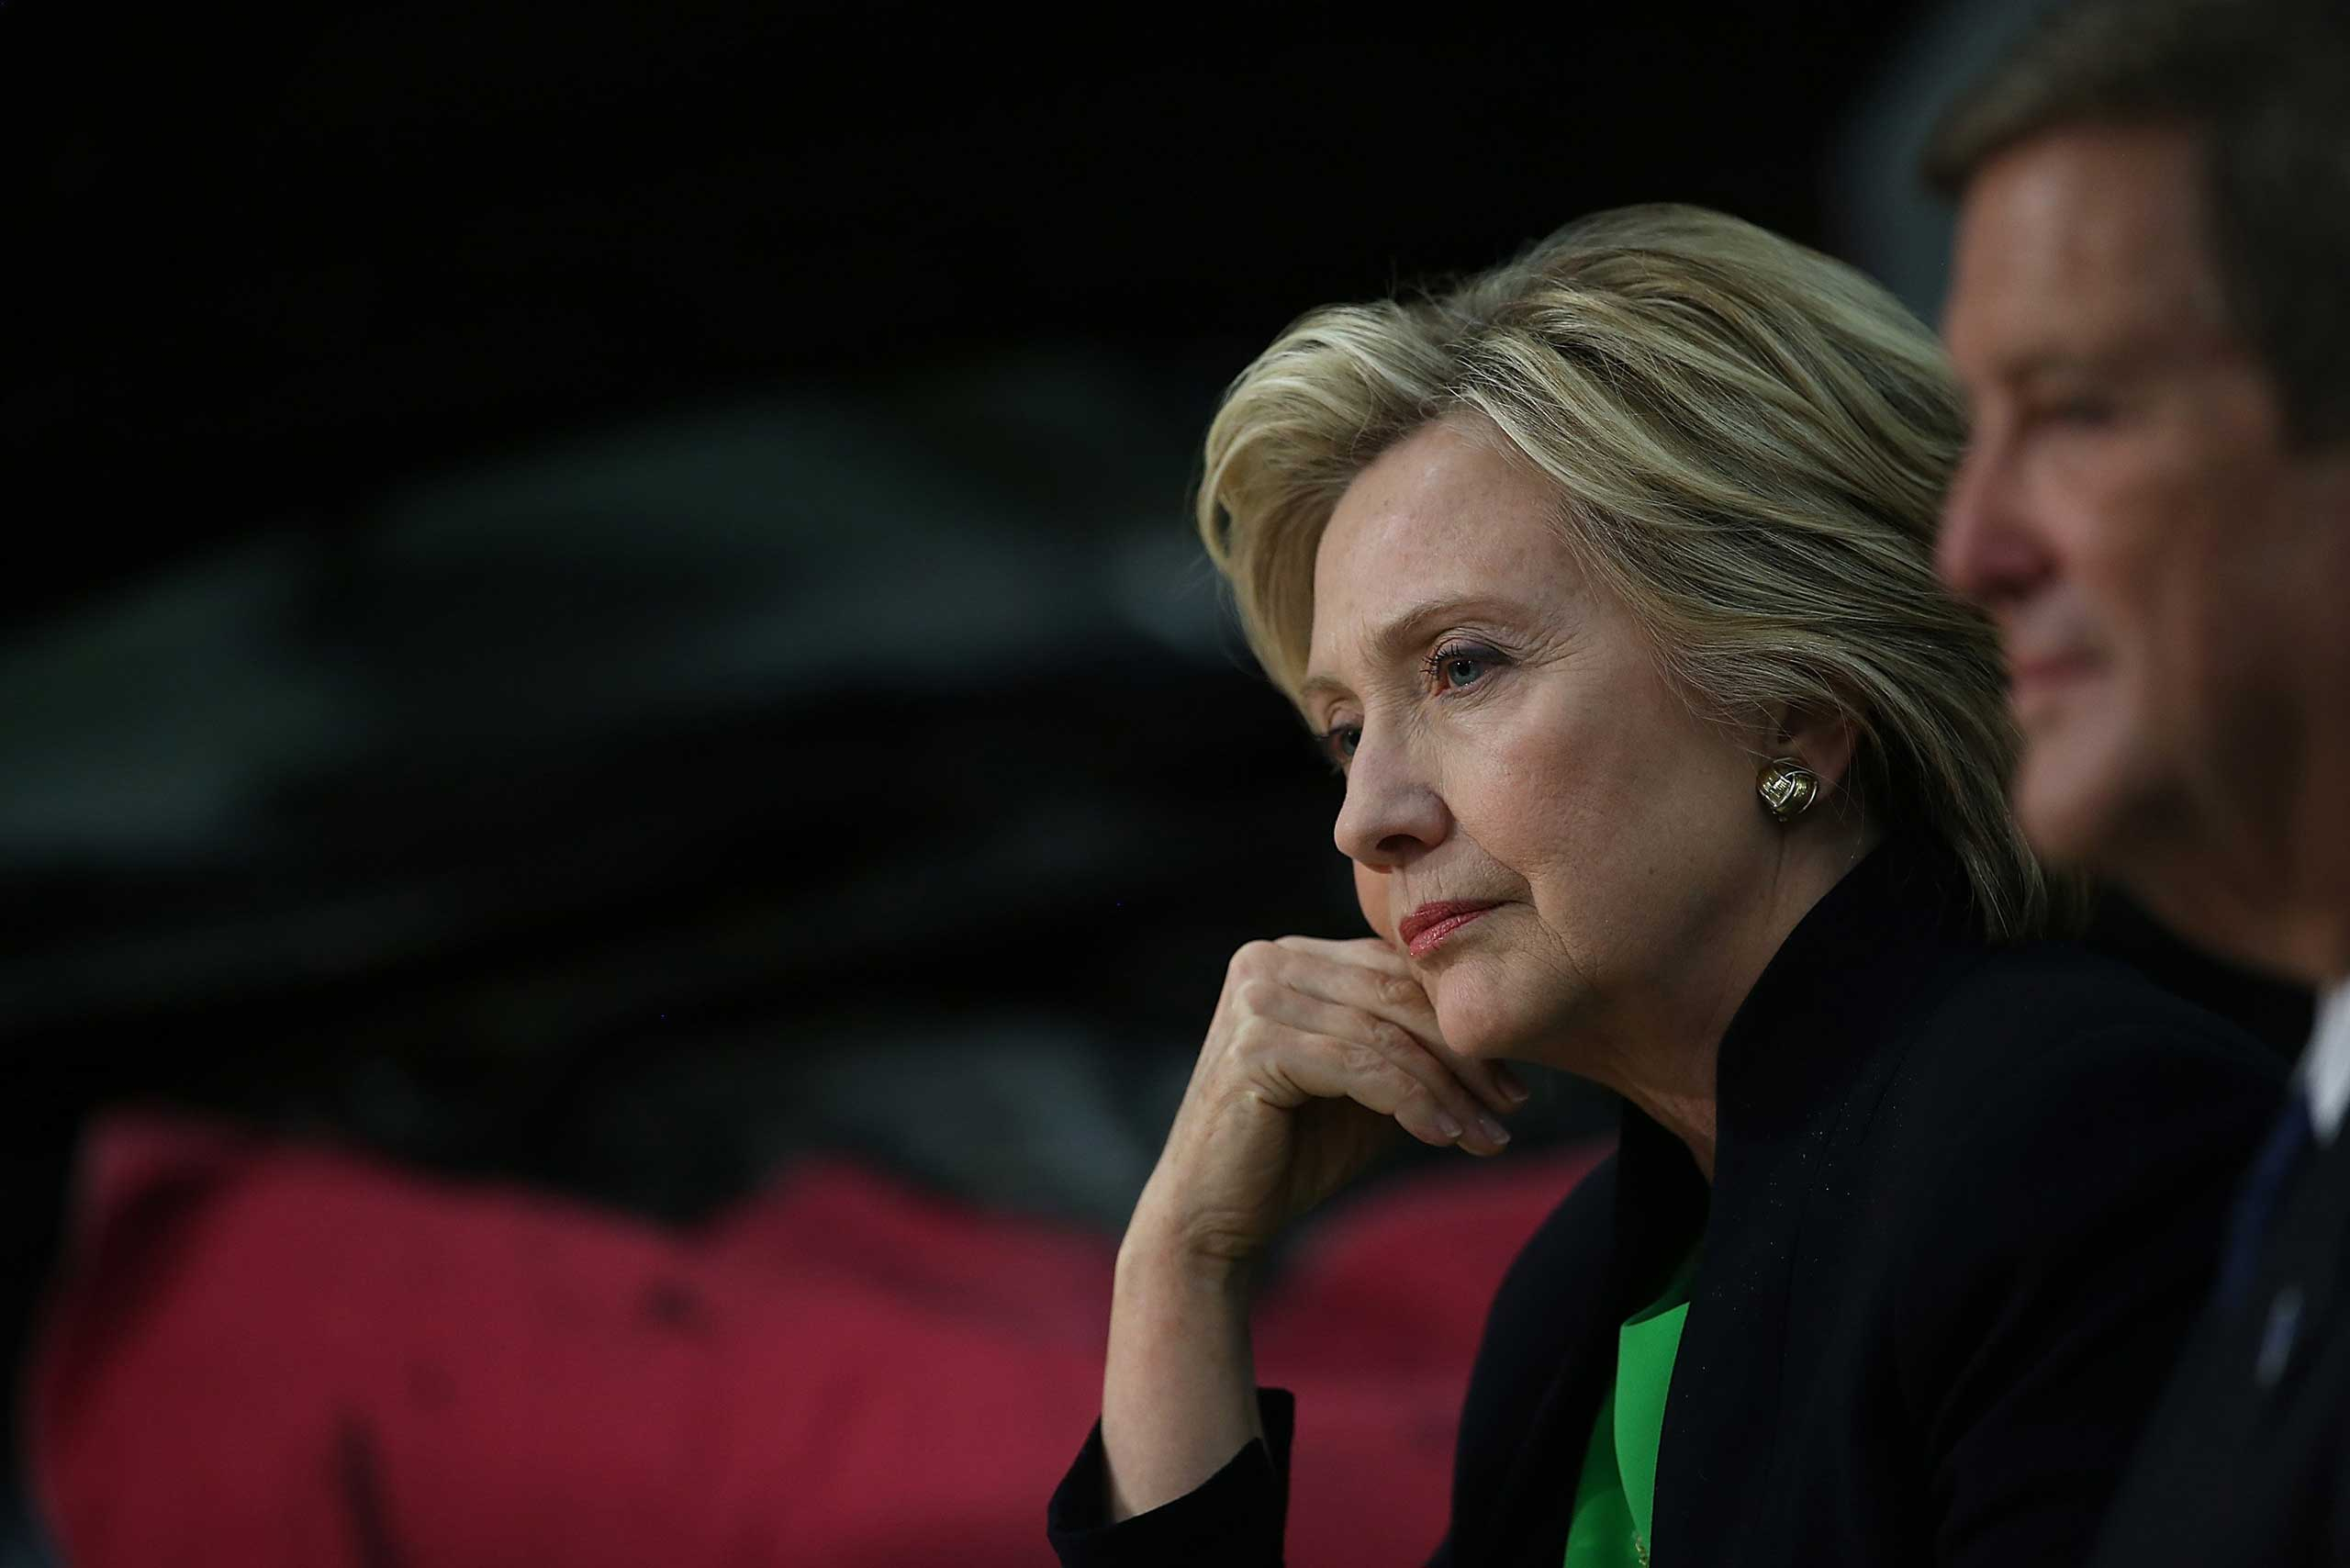 Democratic presidential hopeful and former Secretary of State Hillary Clinton looks on during a roundtable discussion with students and educators at the Kirkwood Community College Jones County Regional Center in Monticello, Iowa, on Apr. 14, 2015.